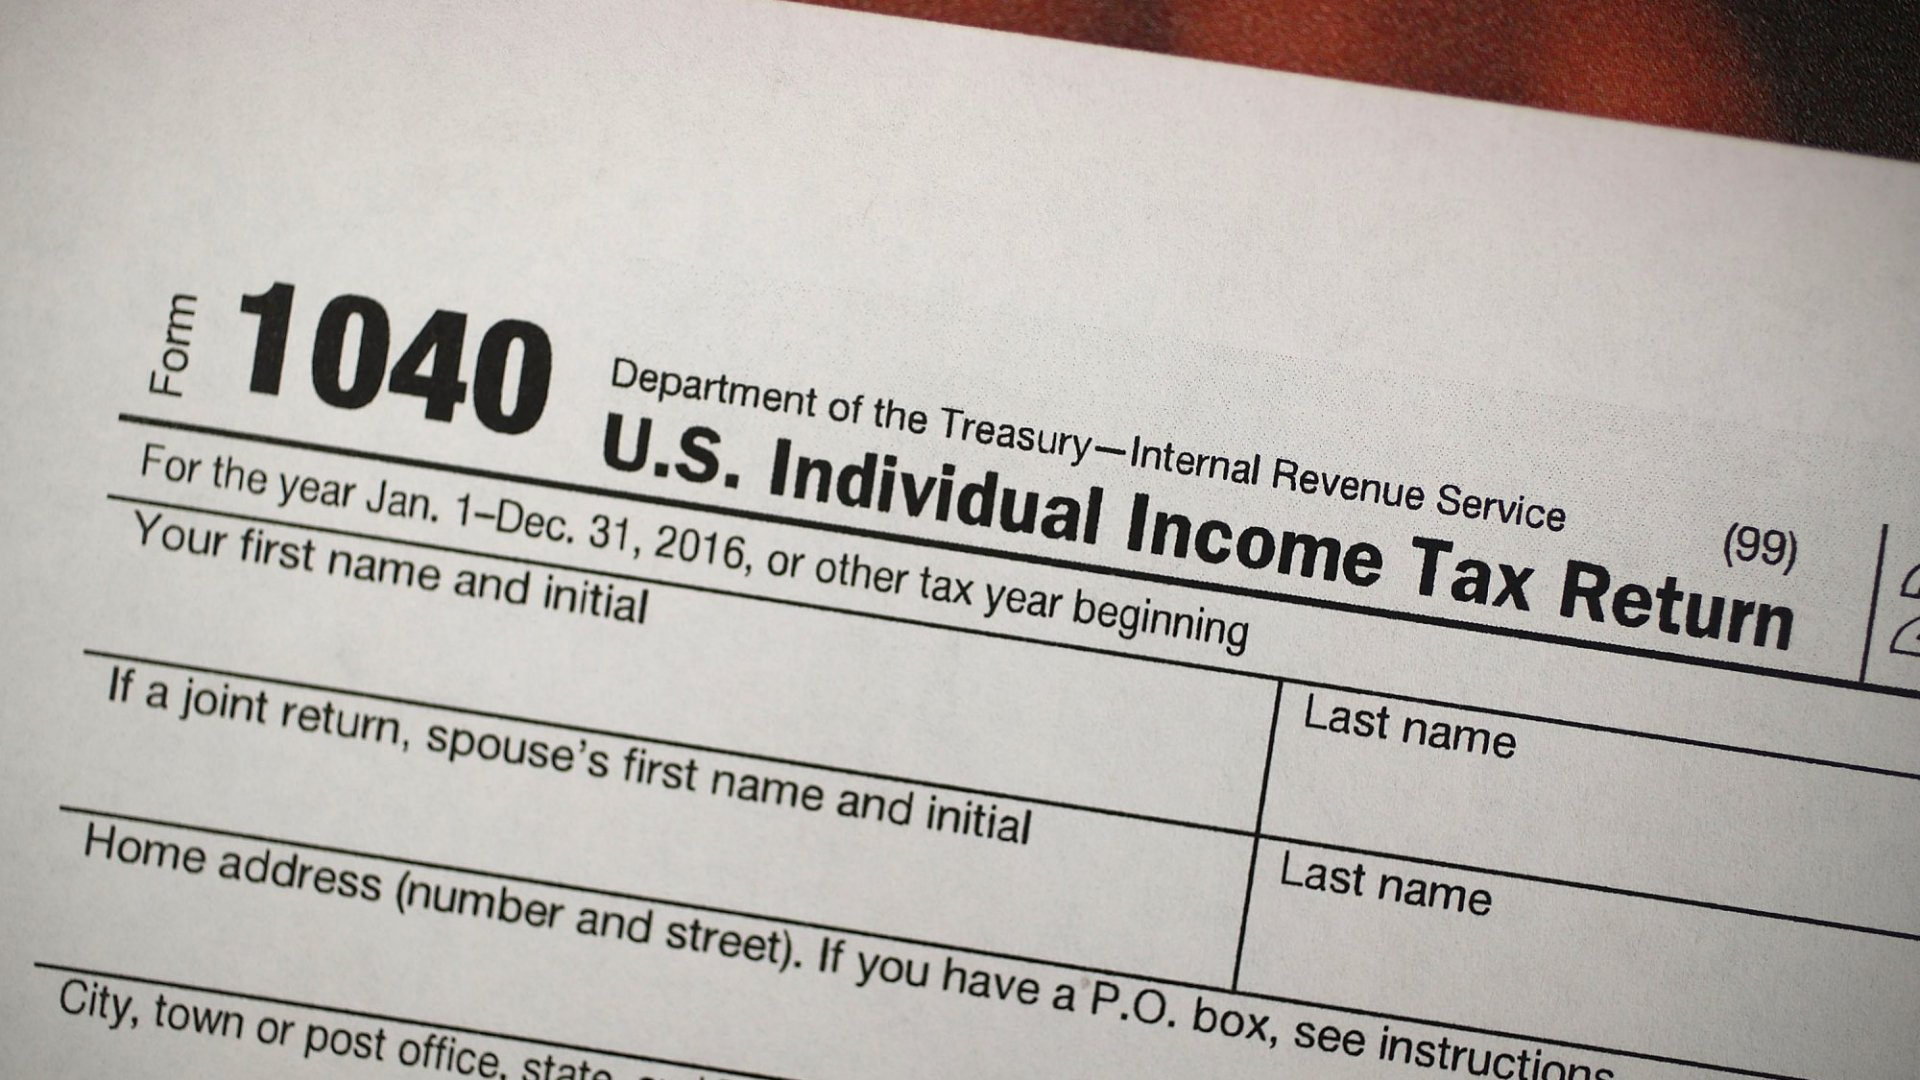 The Tax Law's New 1040 Form Is Here. It's About to Make Your Life a Lot More Difficult